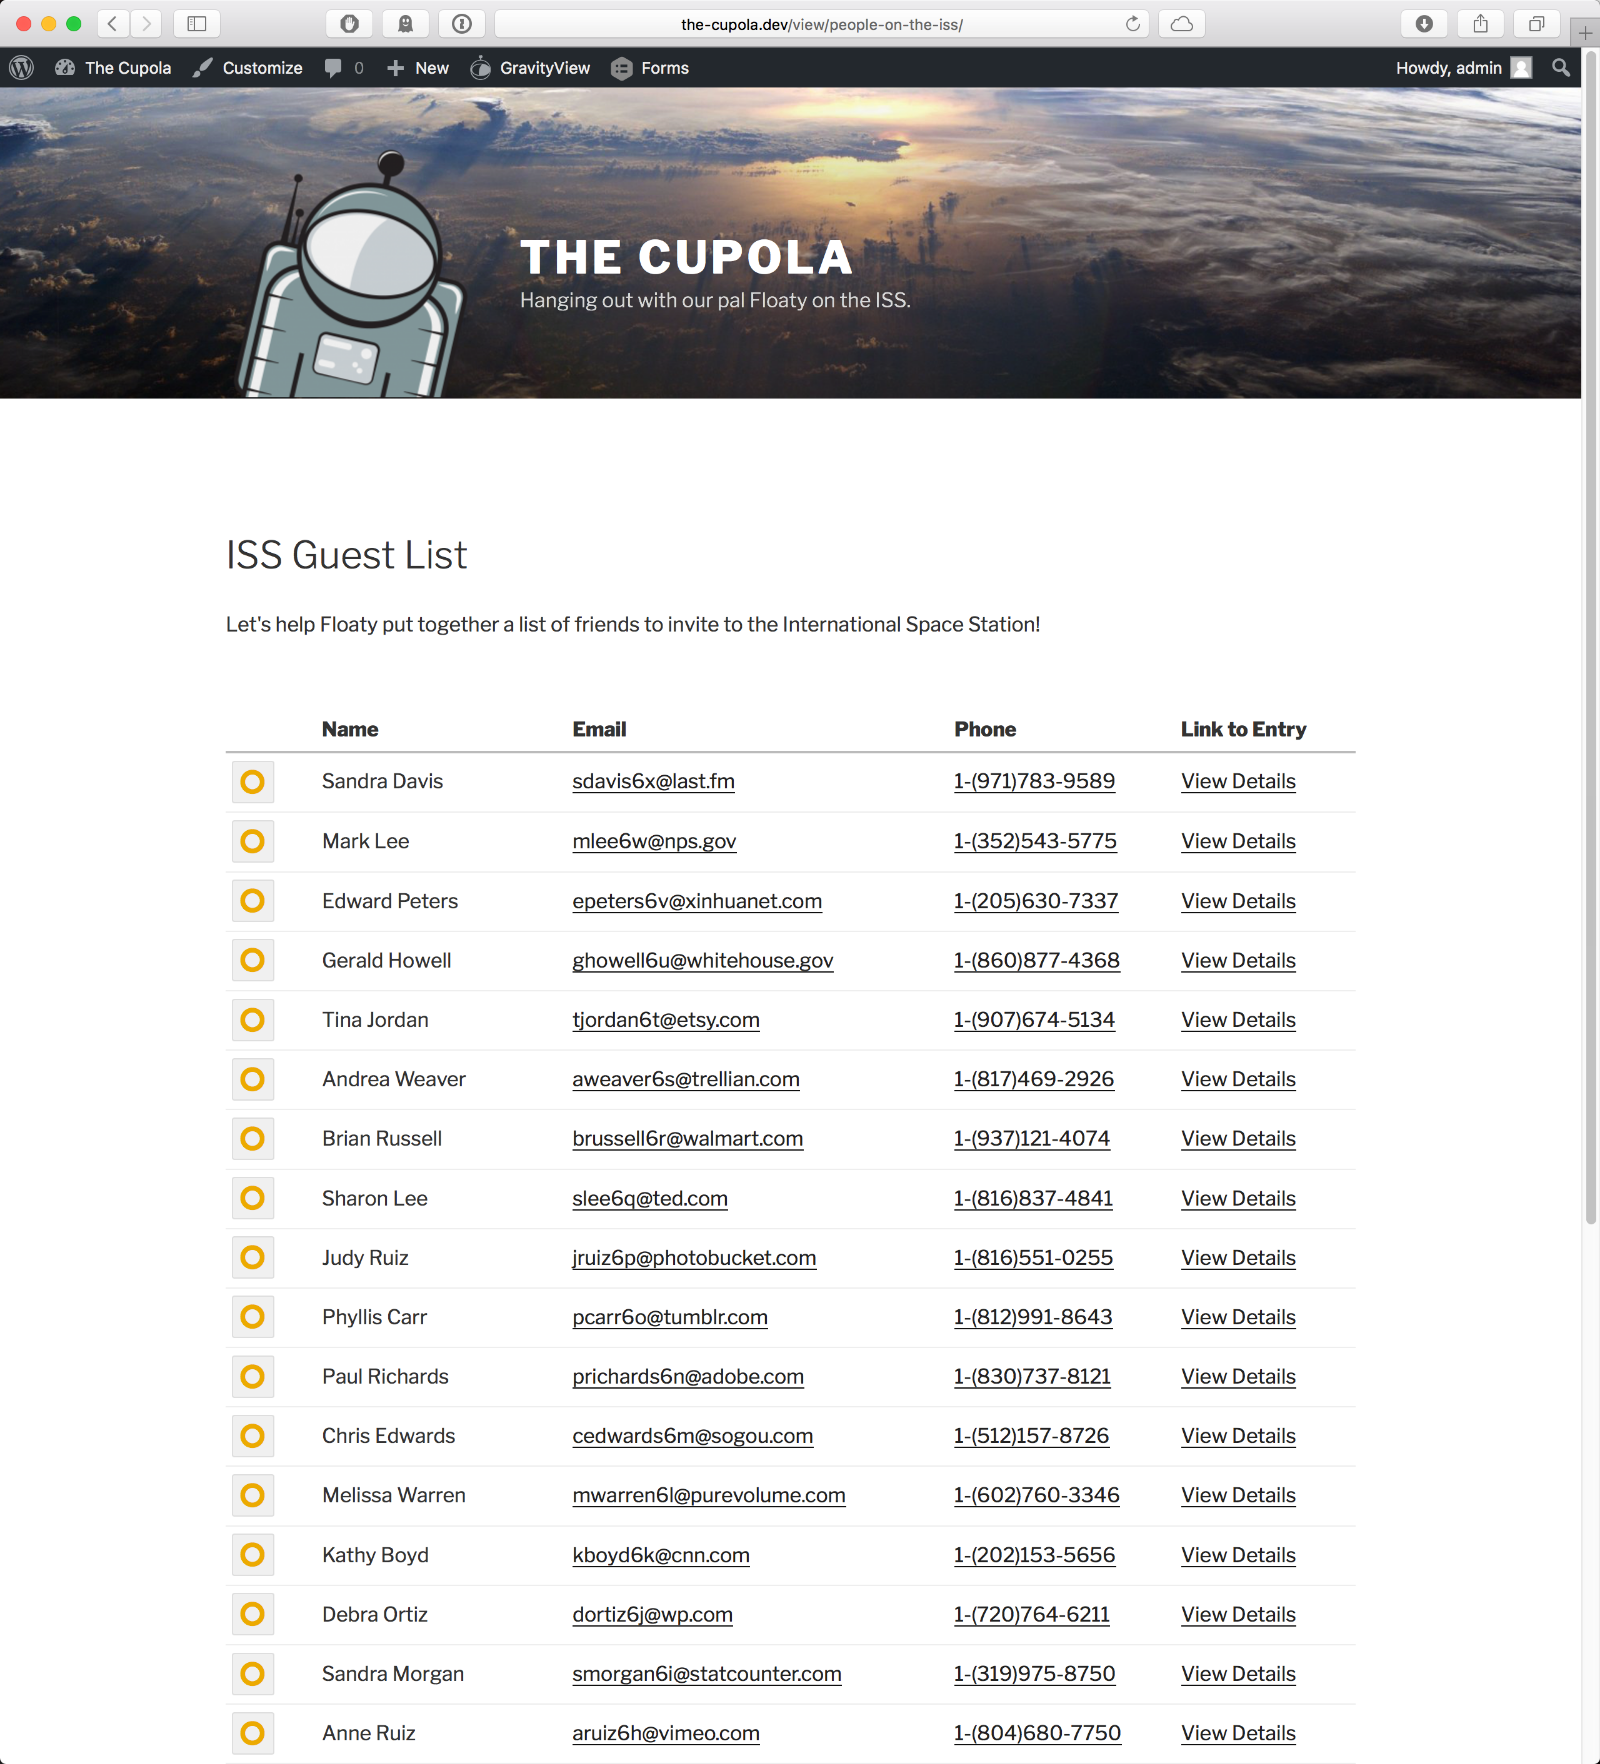 A GravityView table of all the entries on the front-end of the website